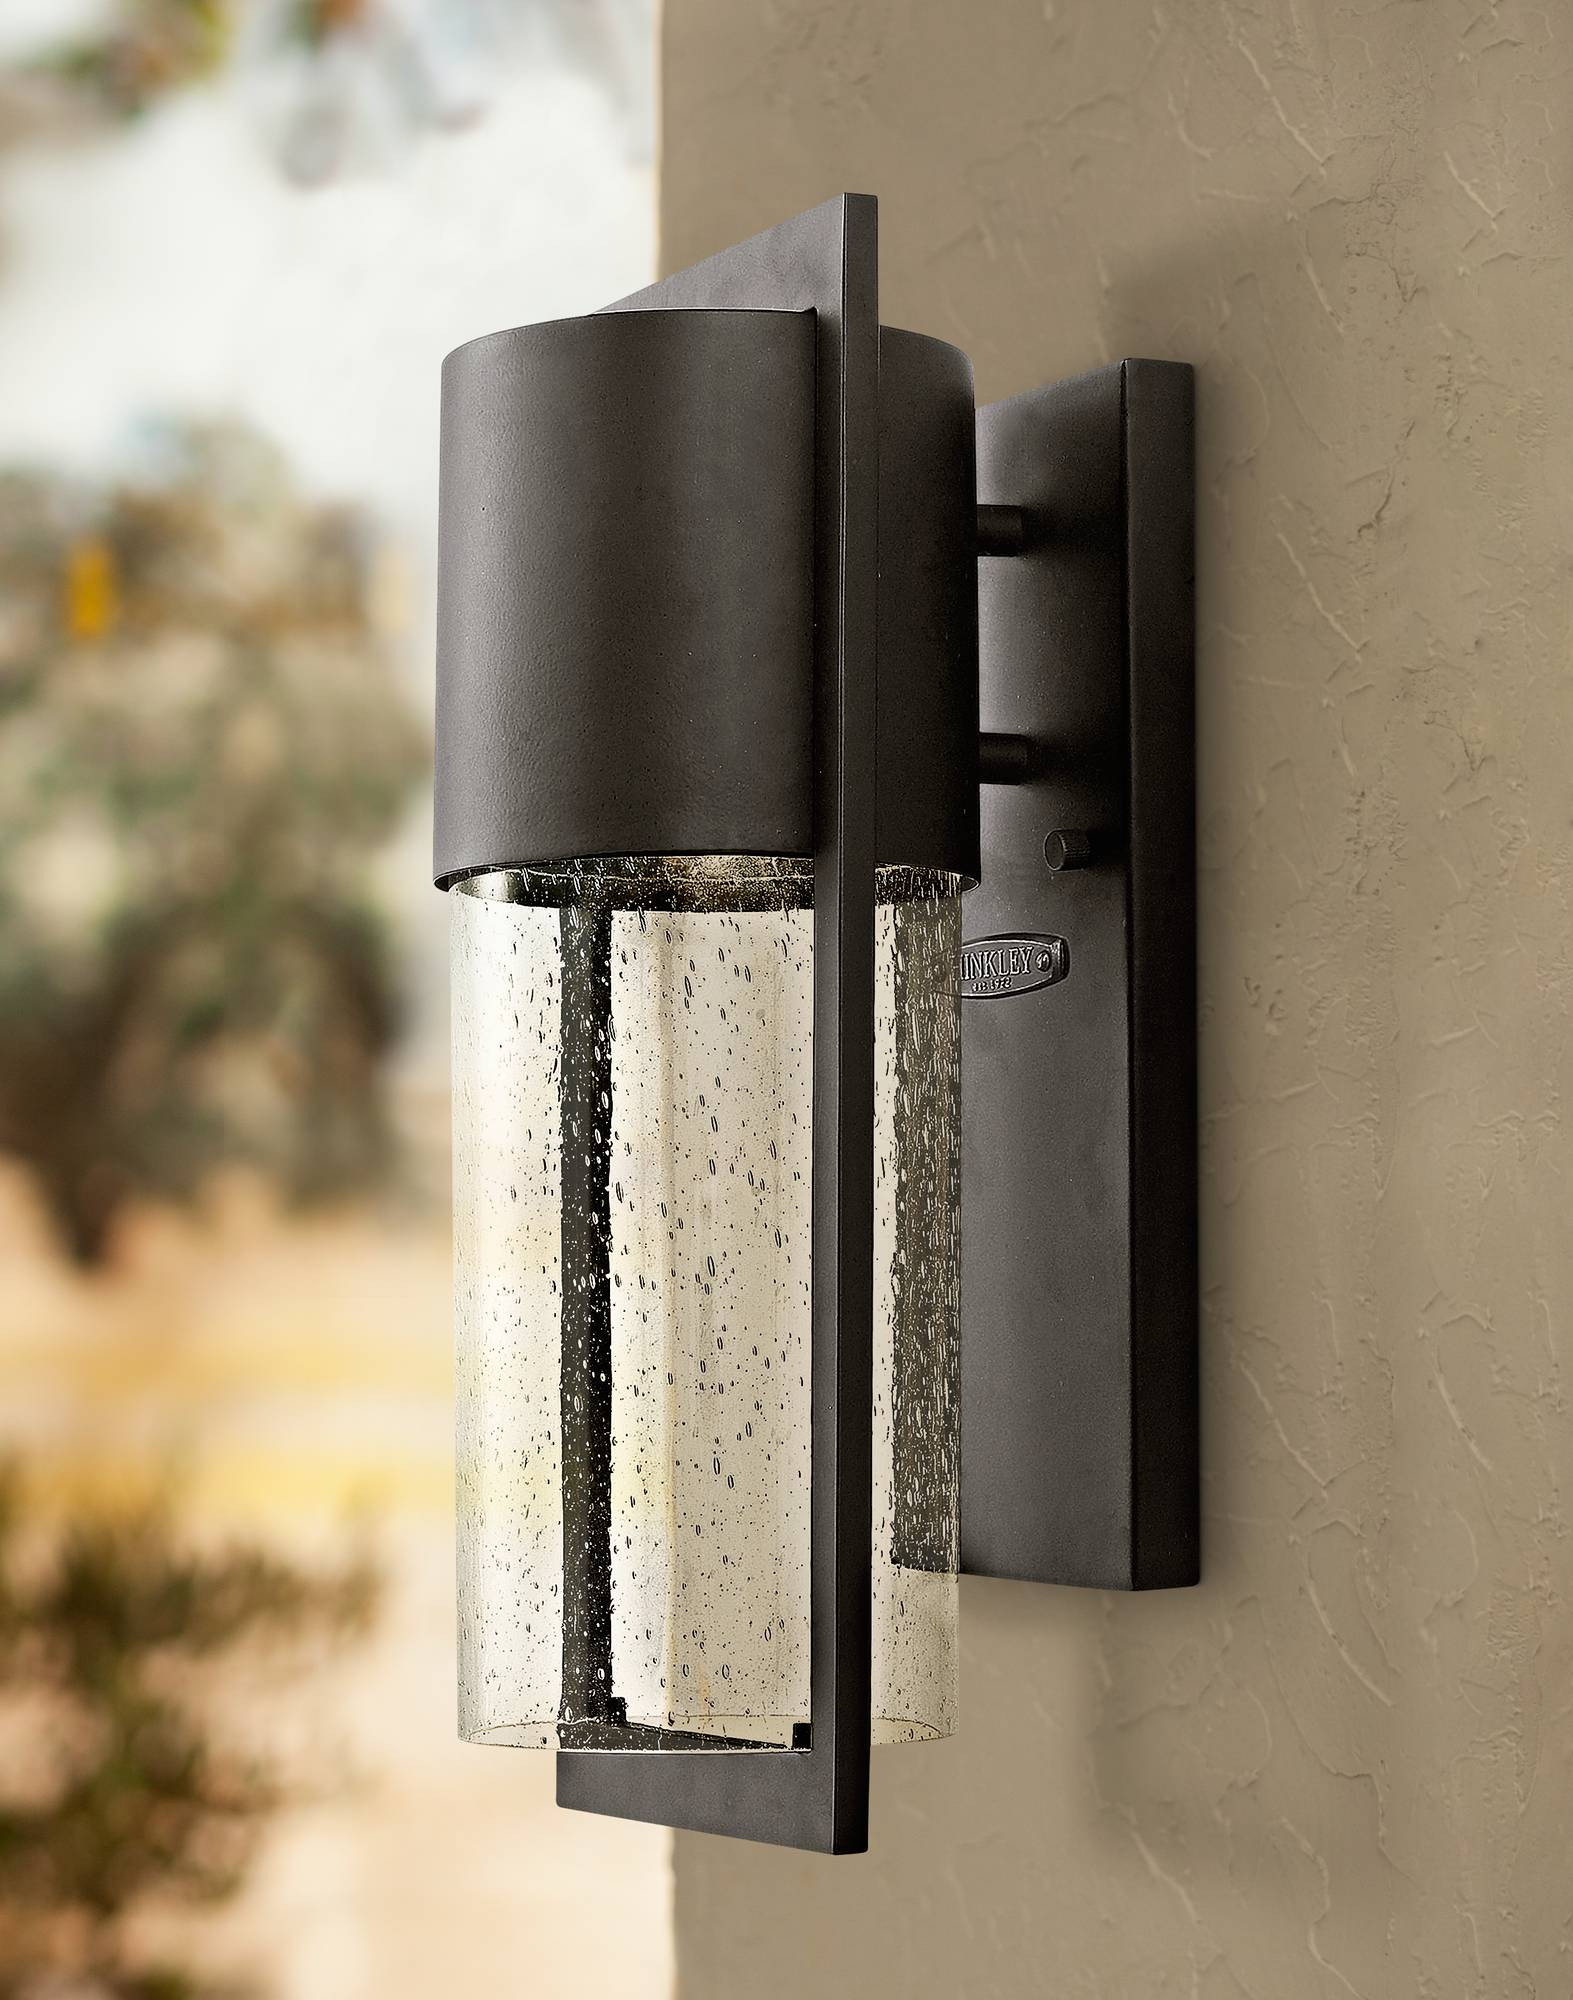 Hinkley shelter 15 1 2 high indoor outdoor wall light